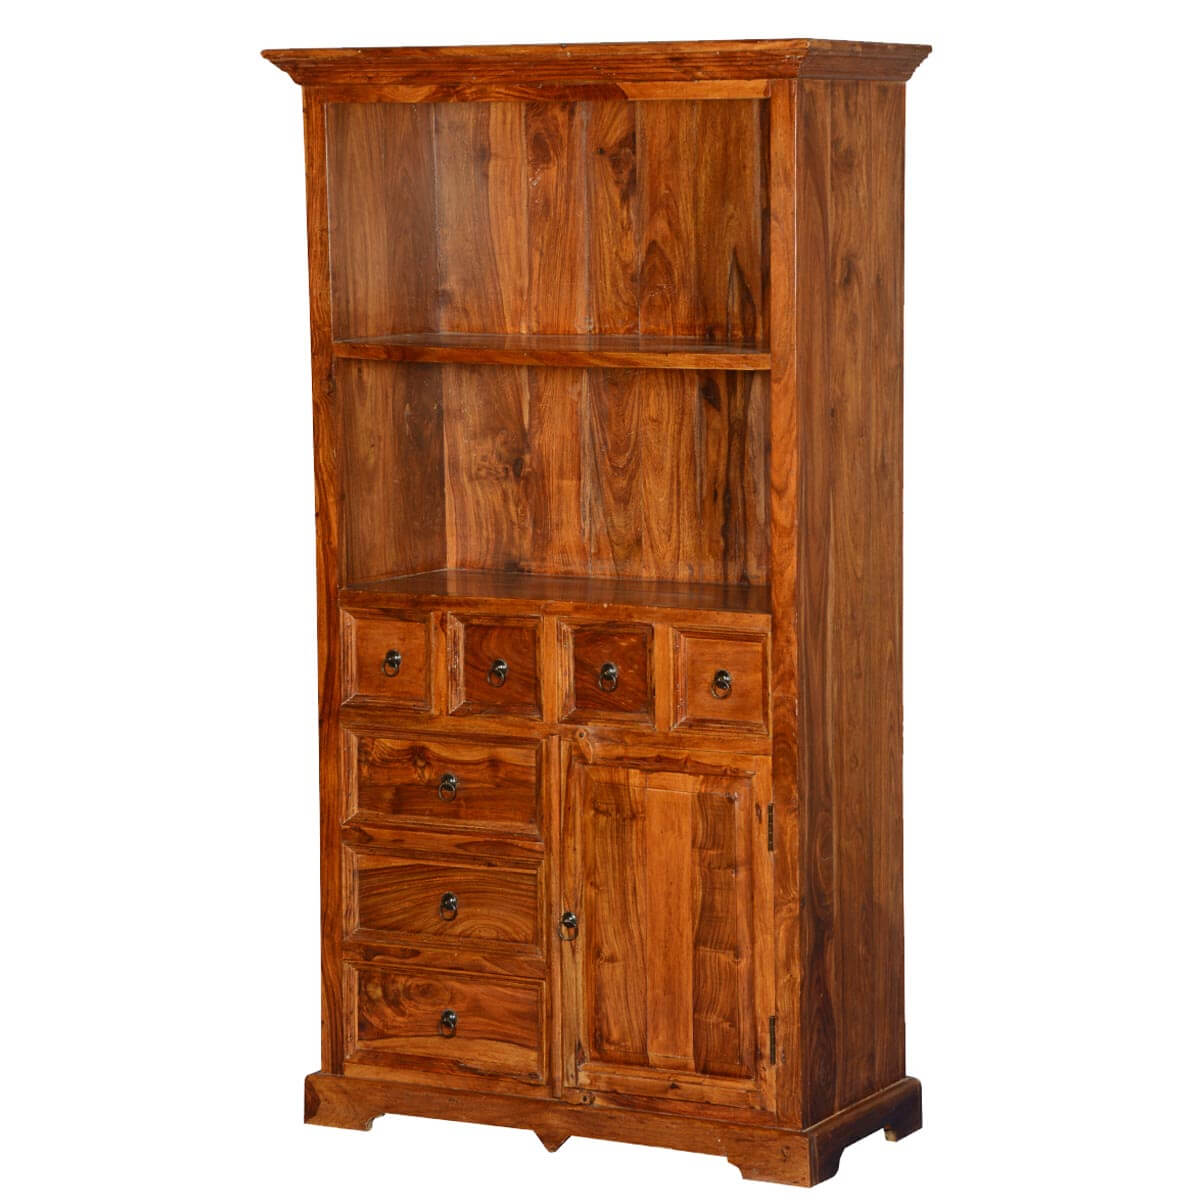 Gainesville 2 Open Shelf Rustic Wood Bookcase With Doors Drawers